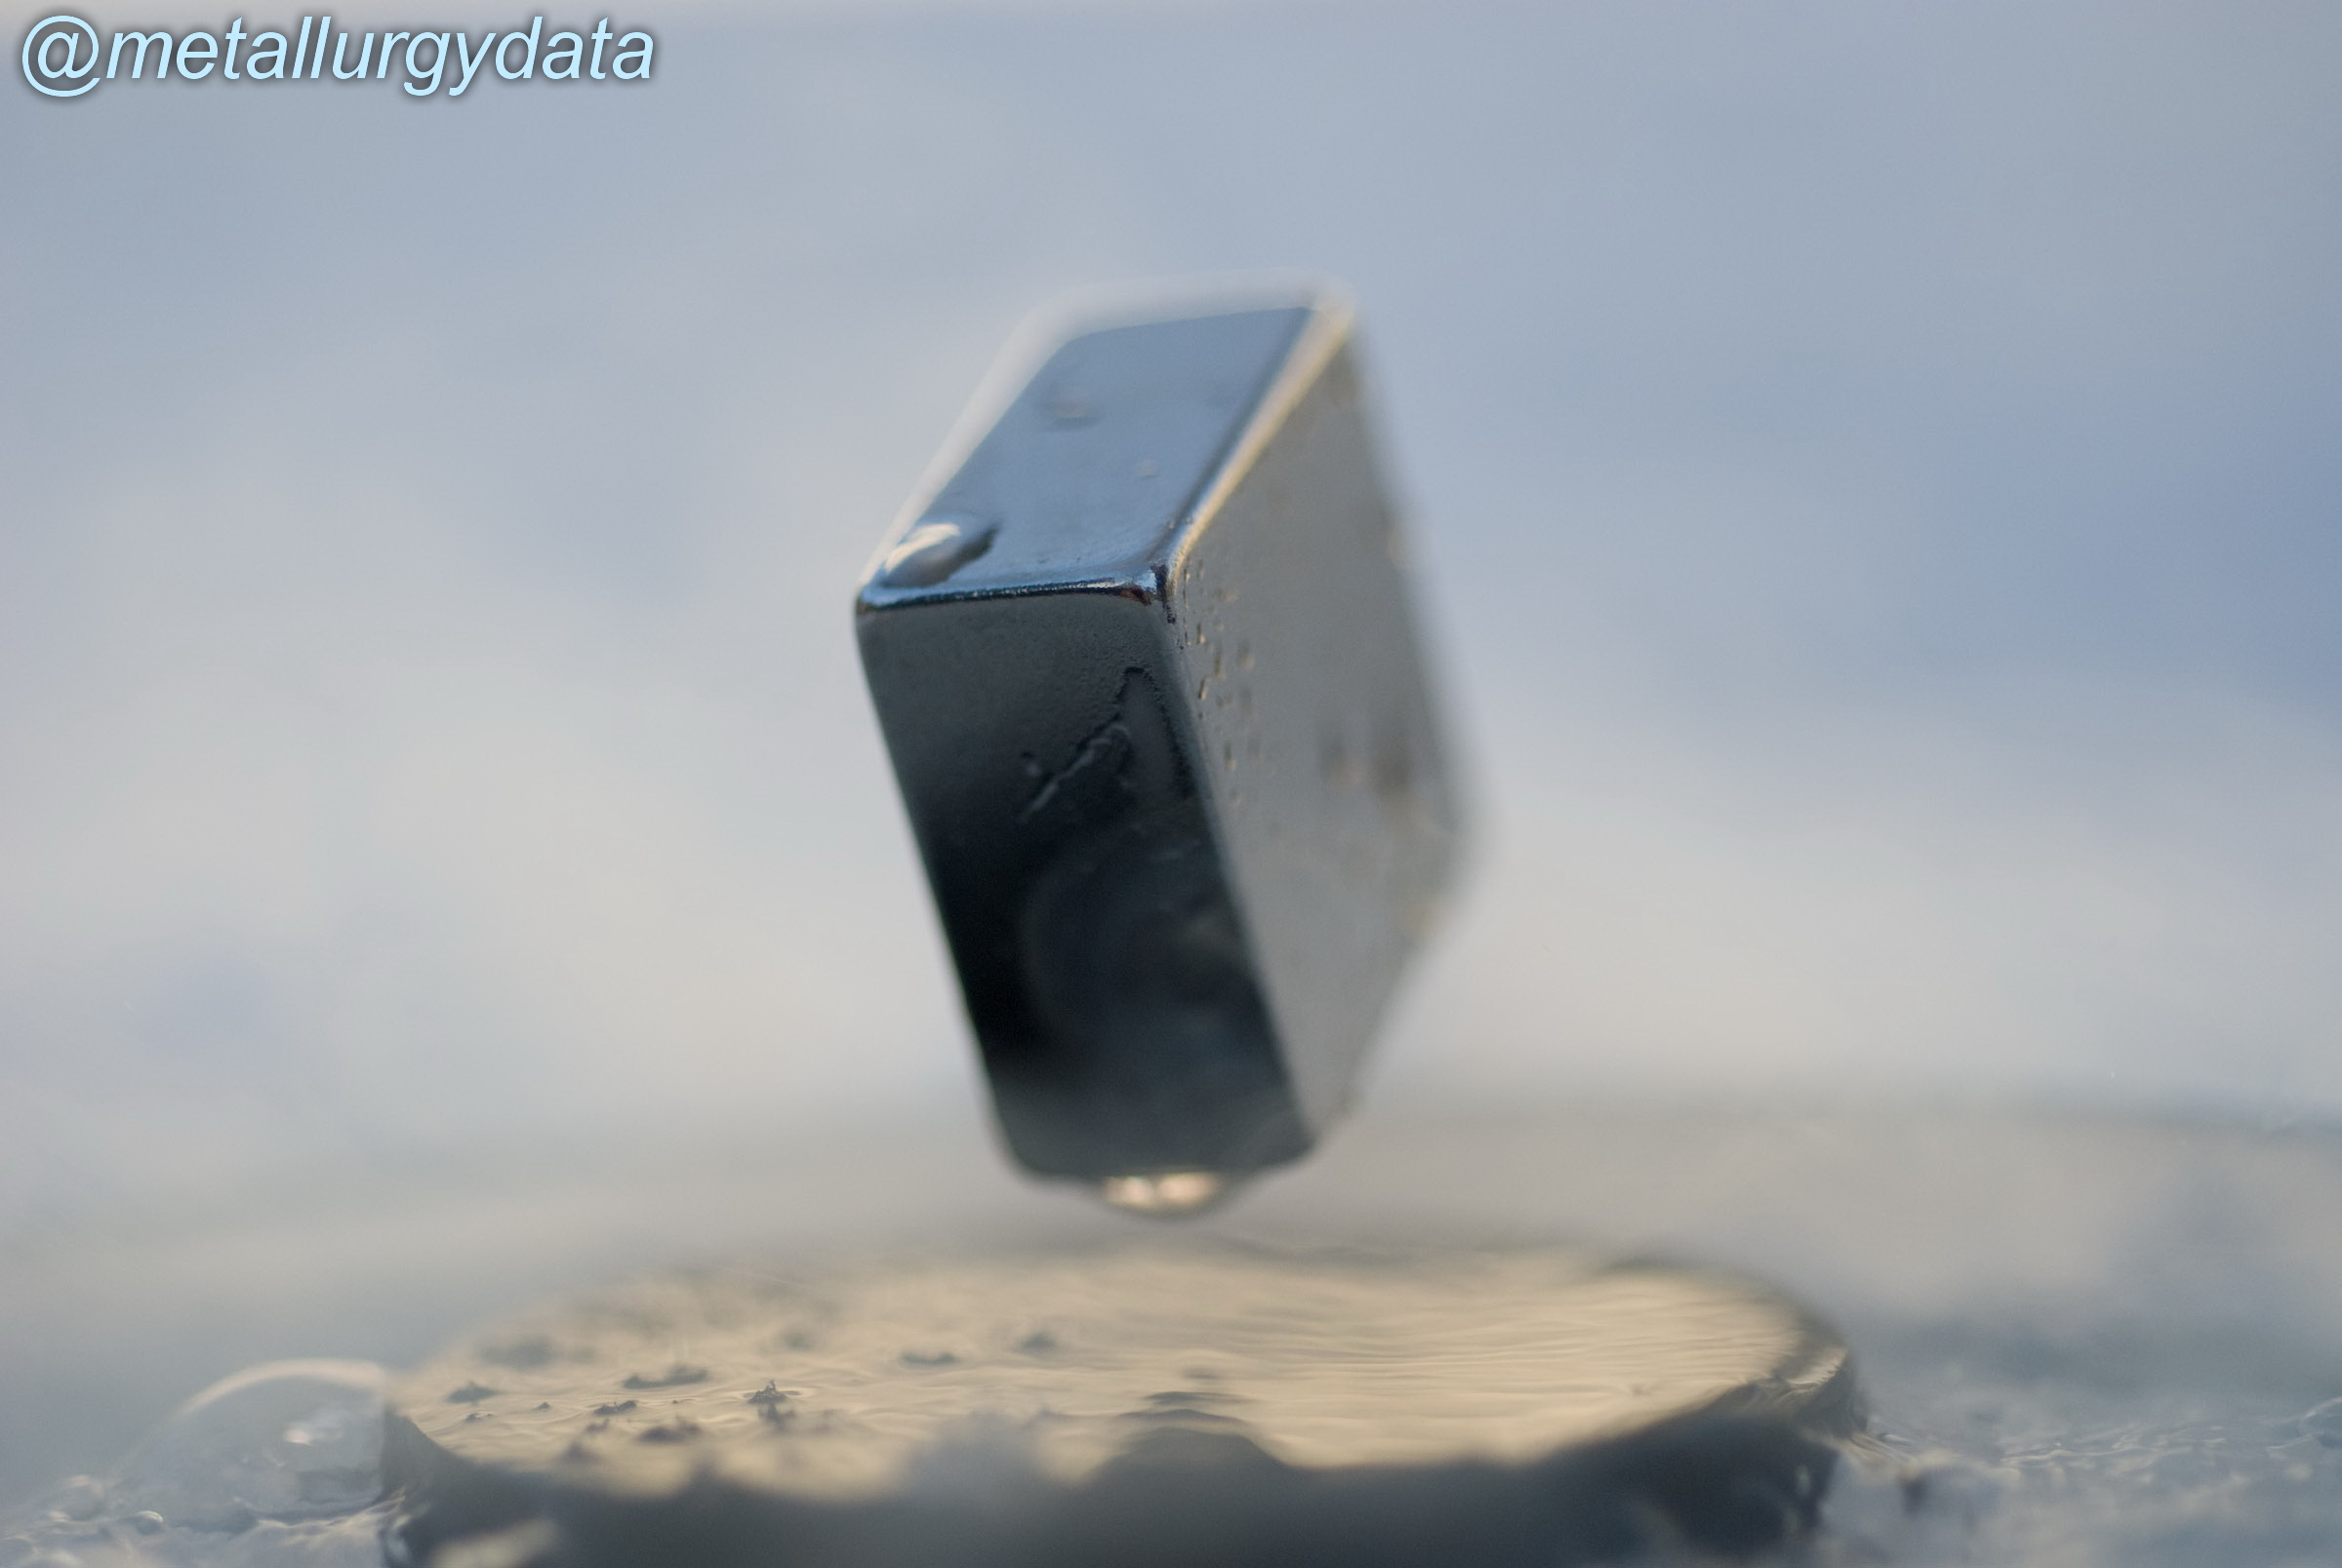 http://s4.picofile.com/file/8287667526/levitation_of_a_magnet_on_top_of_a_superconductor_of_cuprate_type_YBa2Cu3O7_cooled_at_196_C.jpg